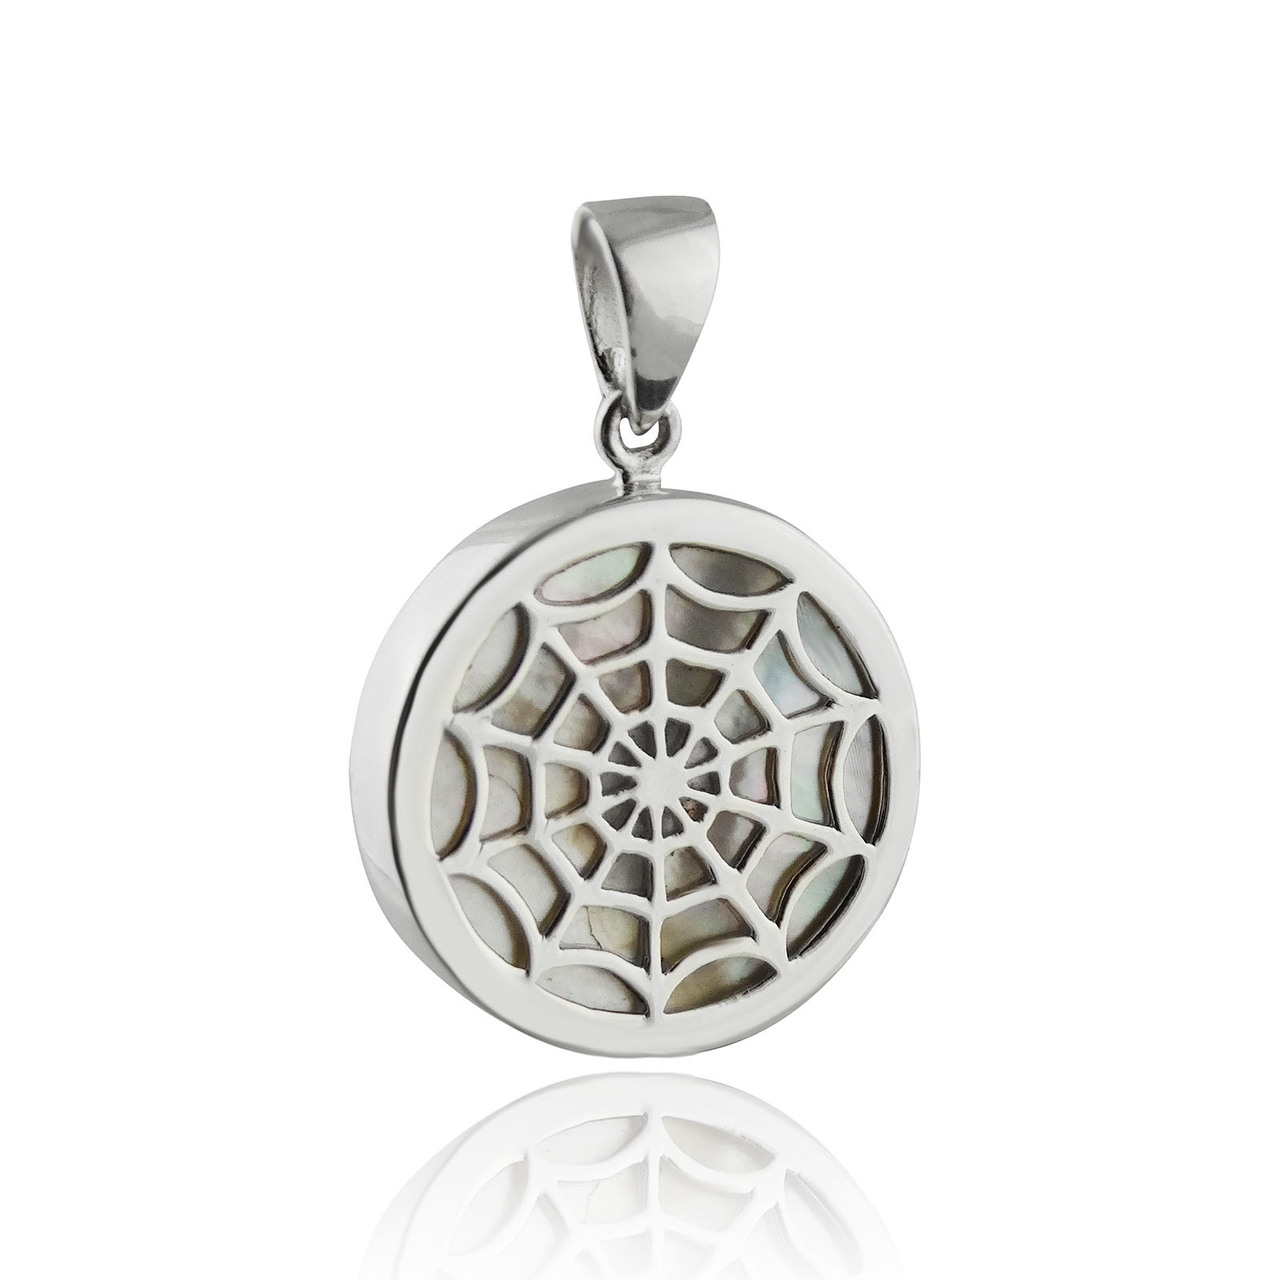 Genuine Mother of PEARL Spiderweb Pendant - 925 Sterling Silver